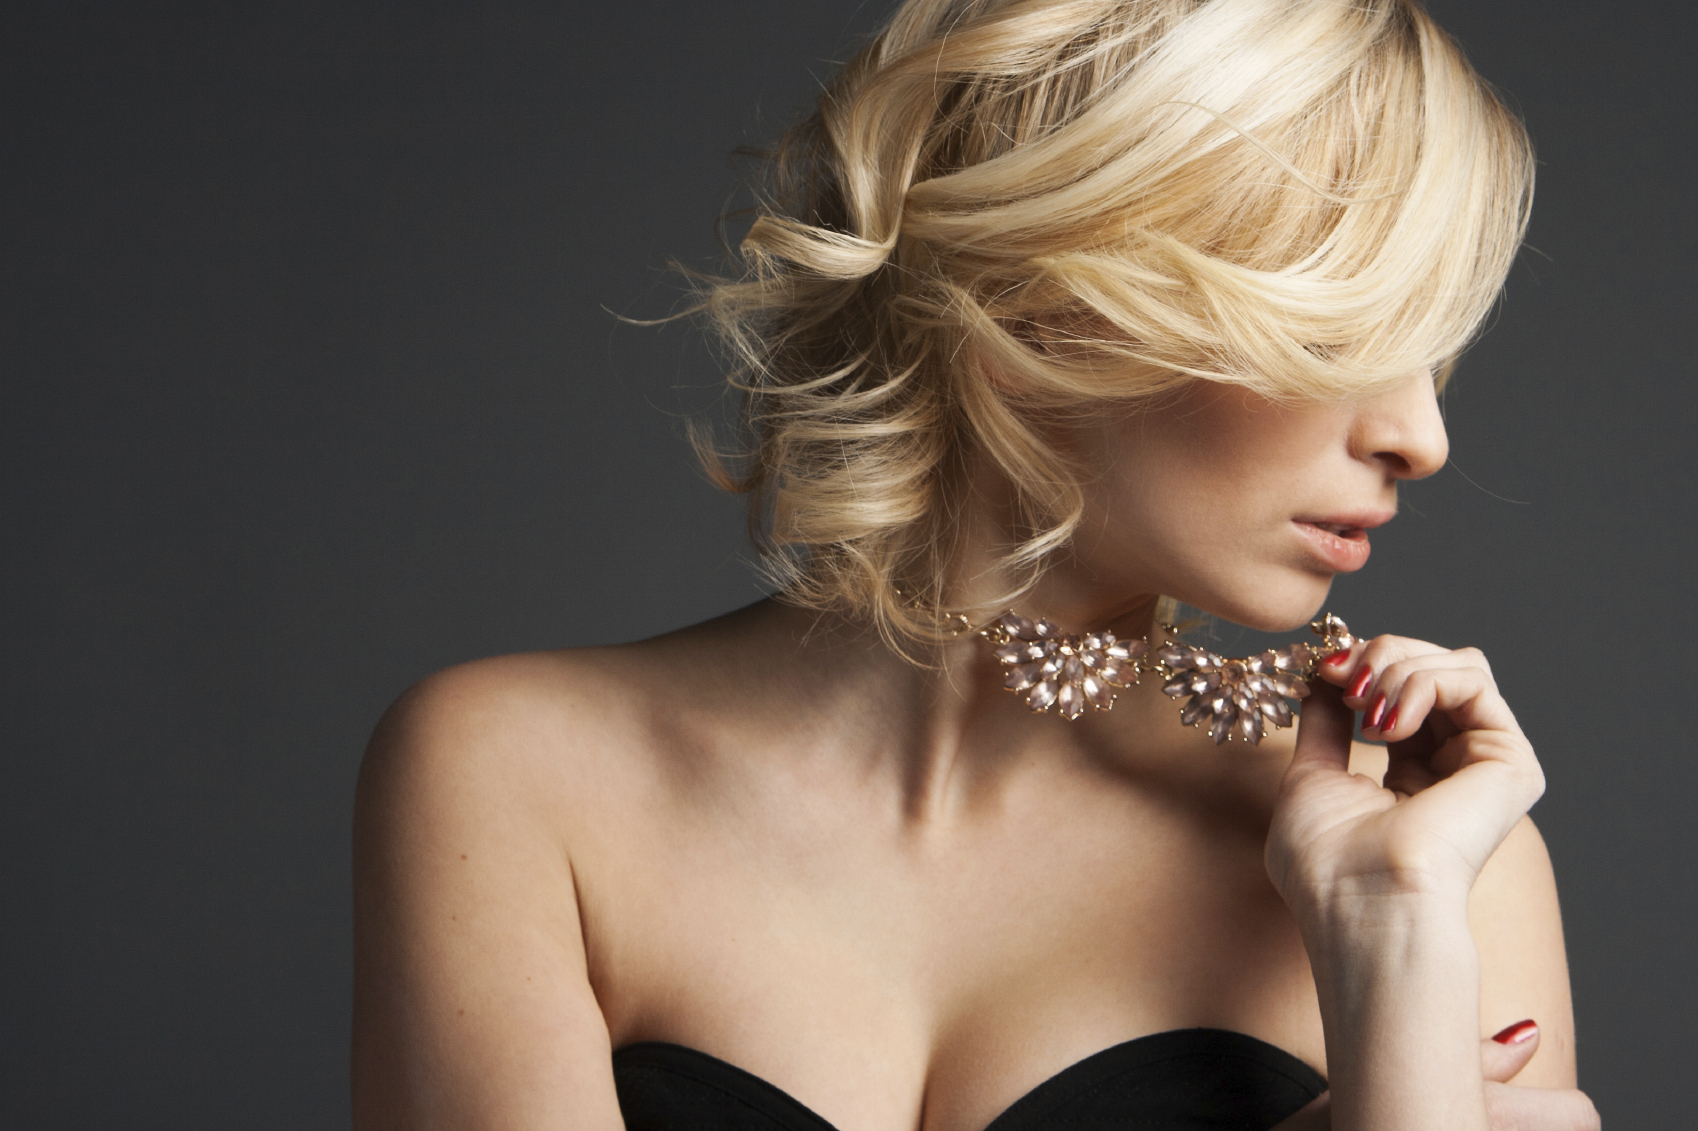 Book now to get great hair for the holidays!